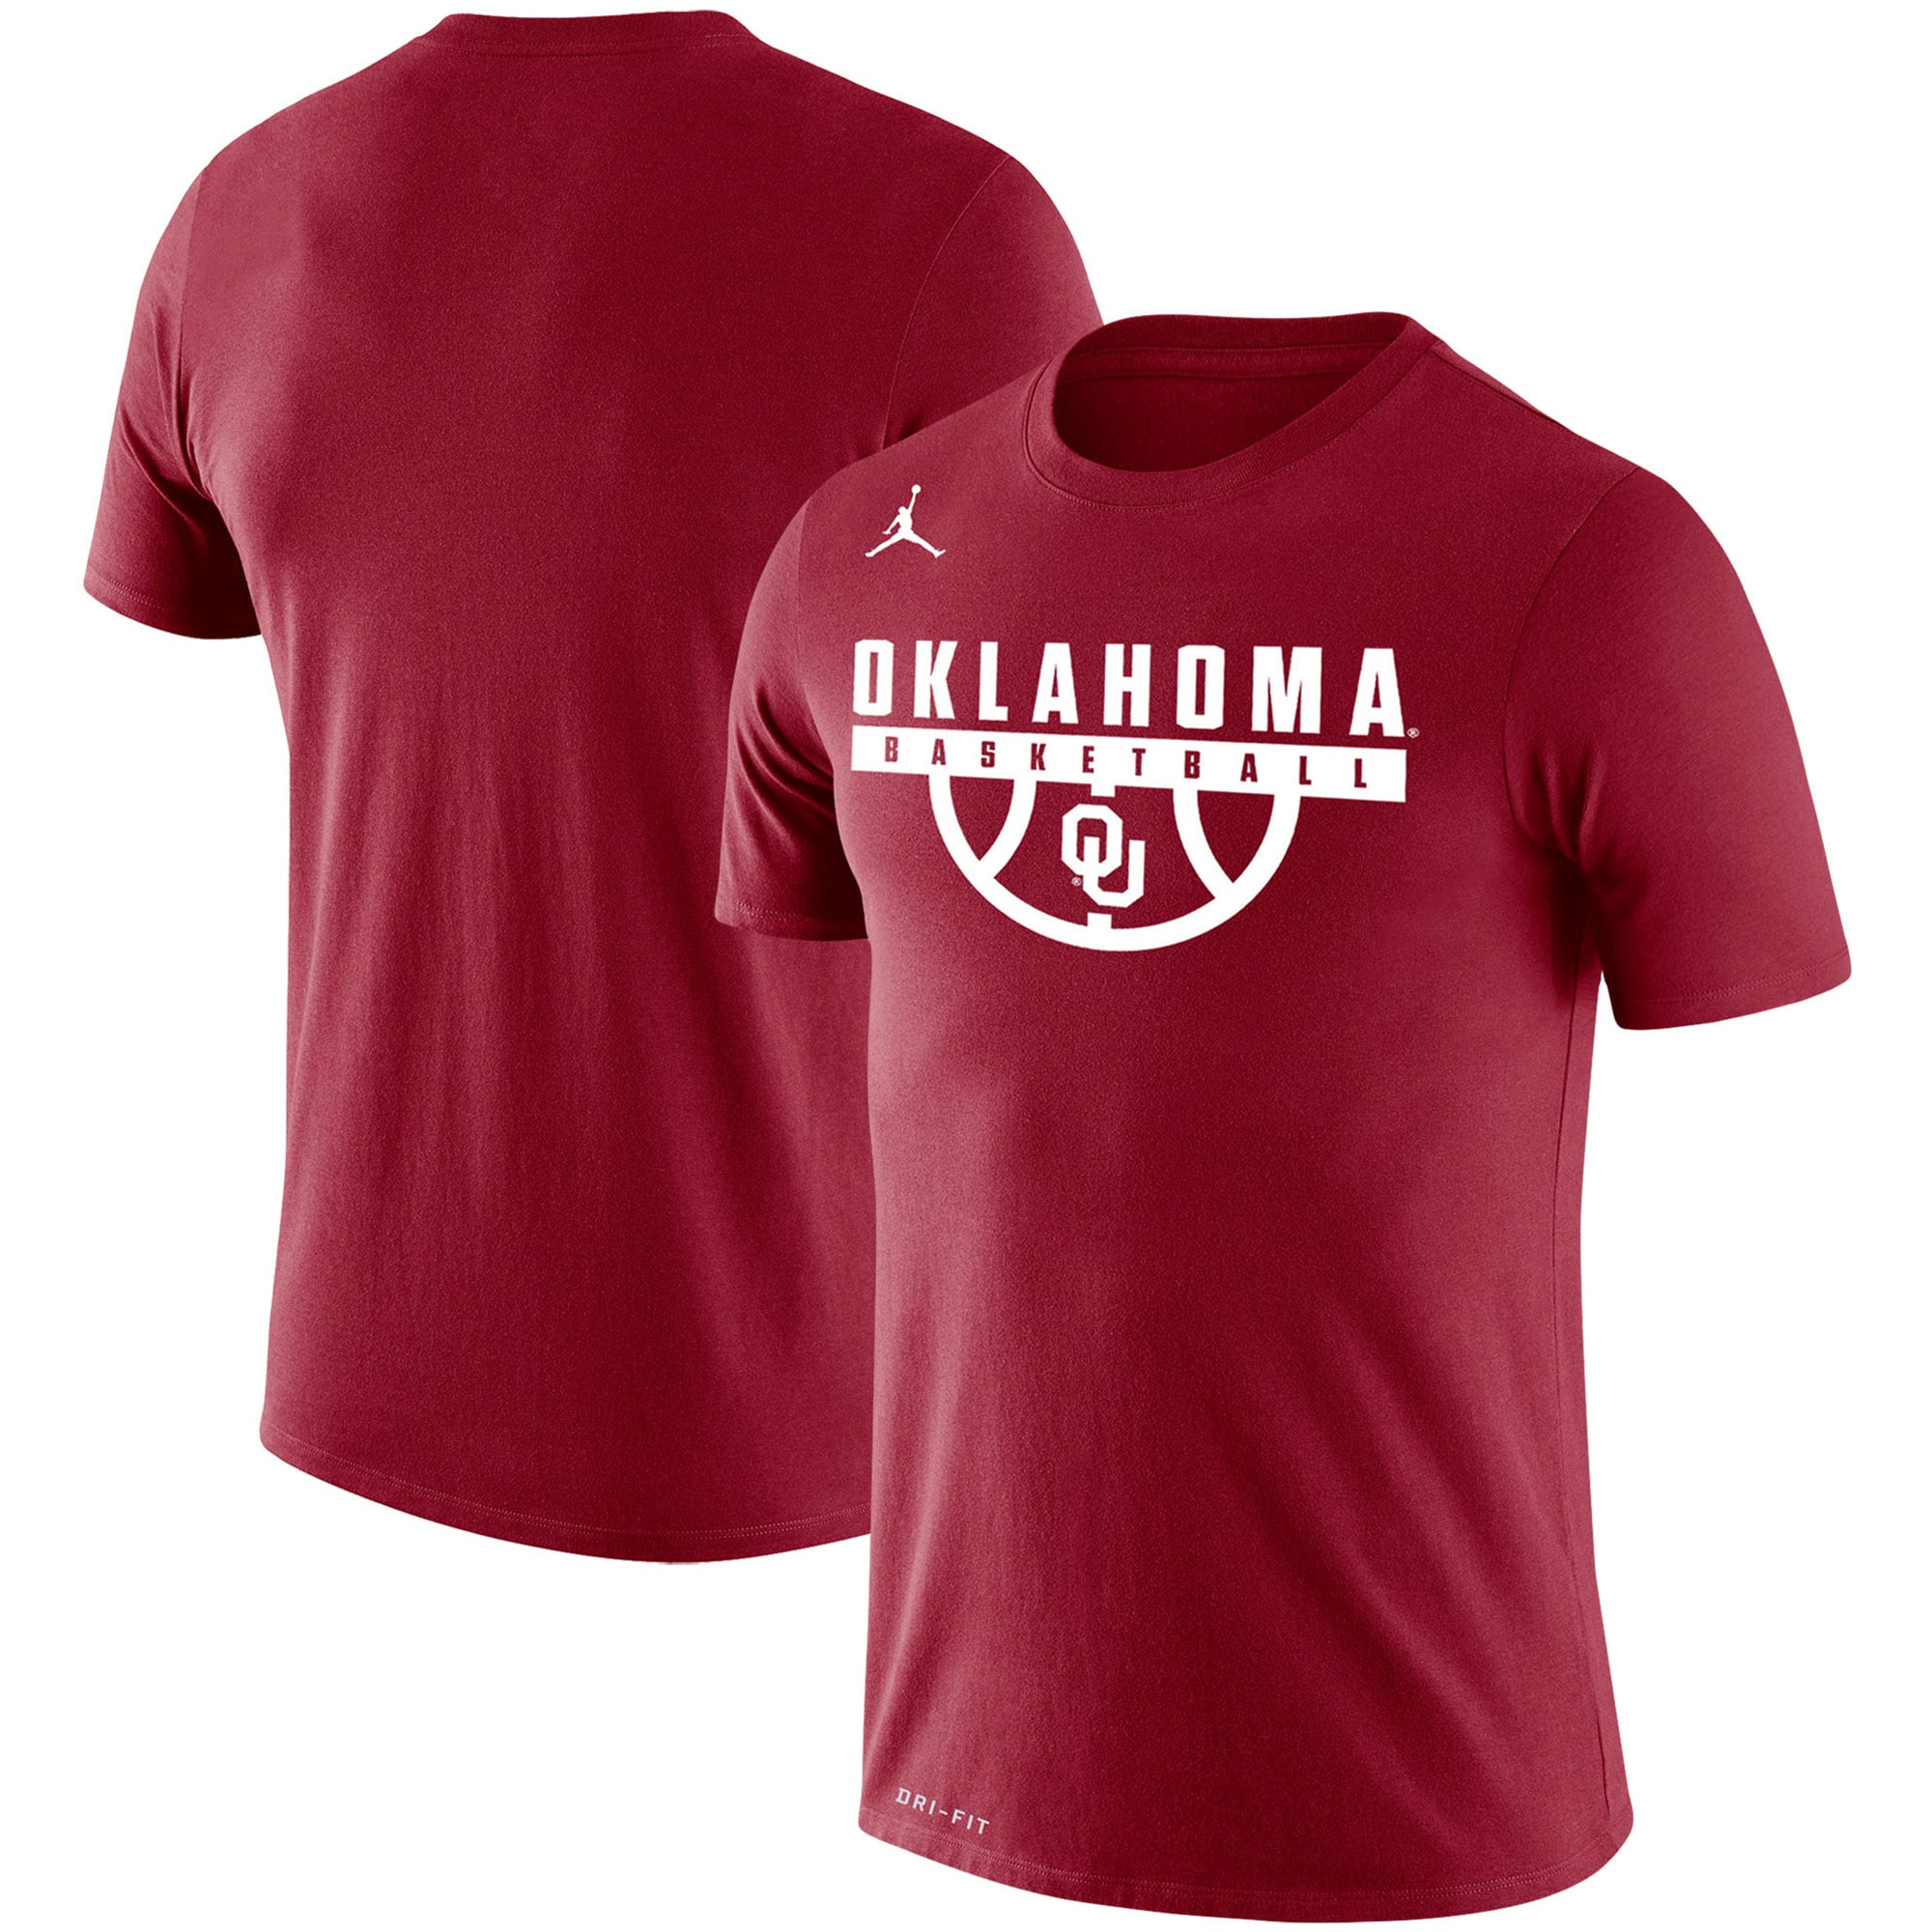 Oklahoma Sooners Jordan Brand Basketball Drop Legend Performance T-Shirt - Crimson